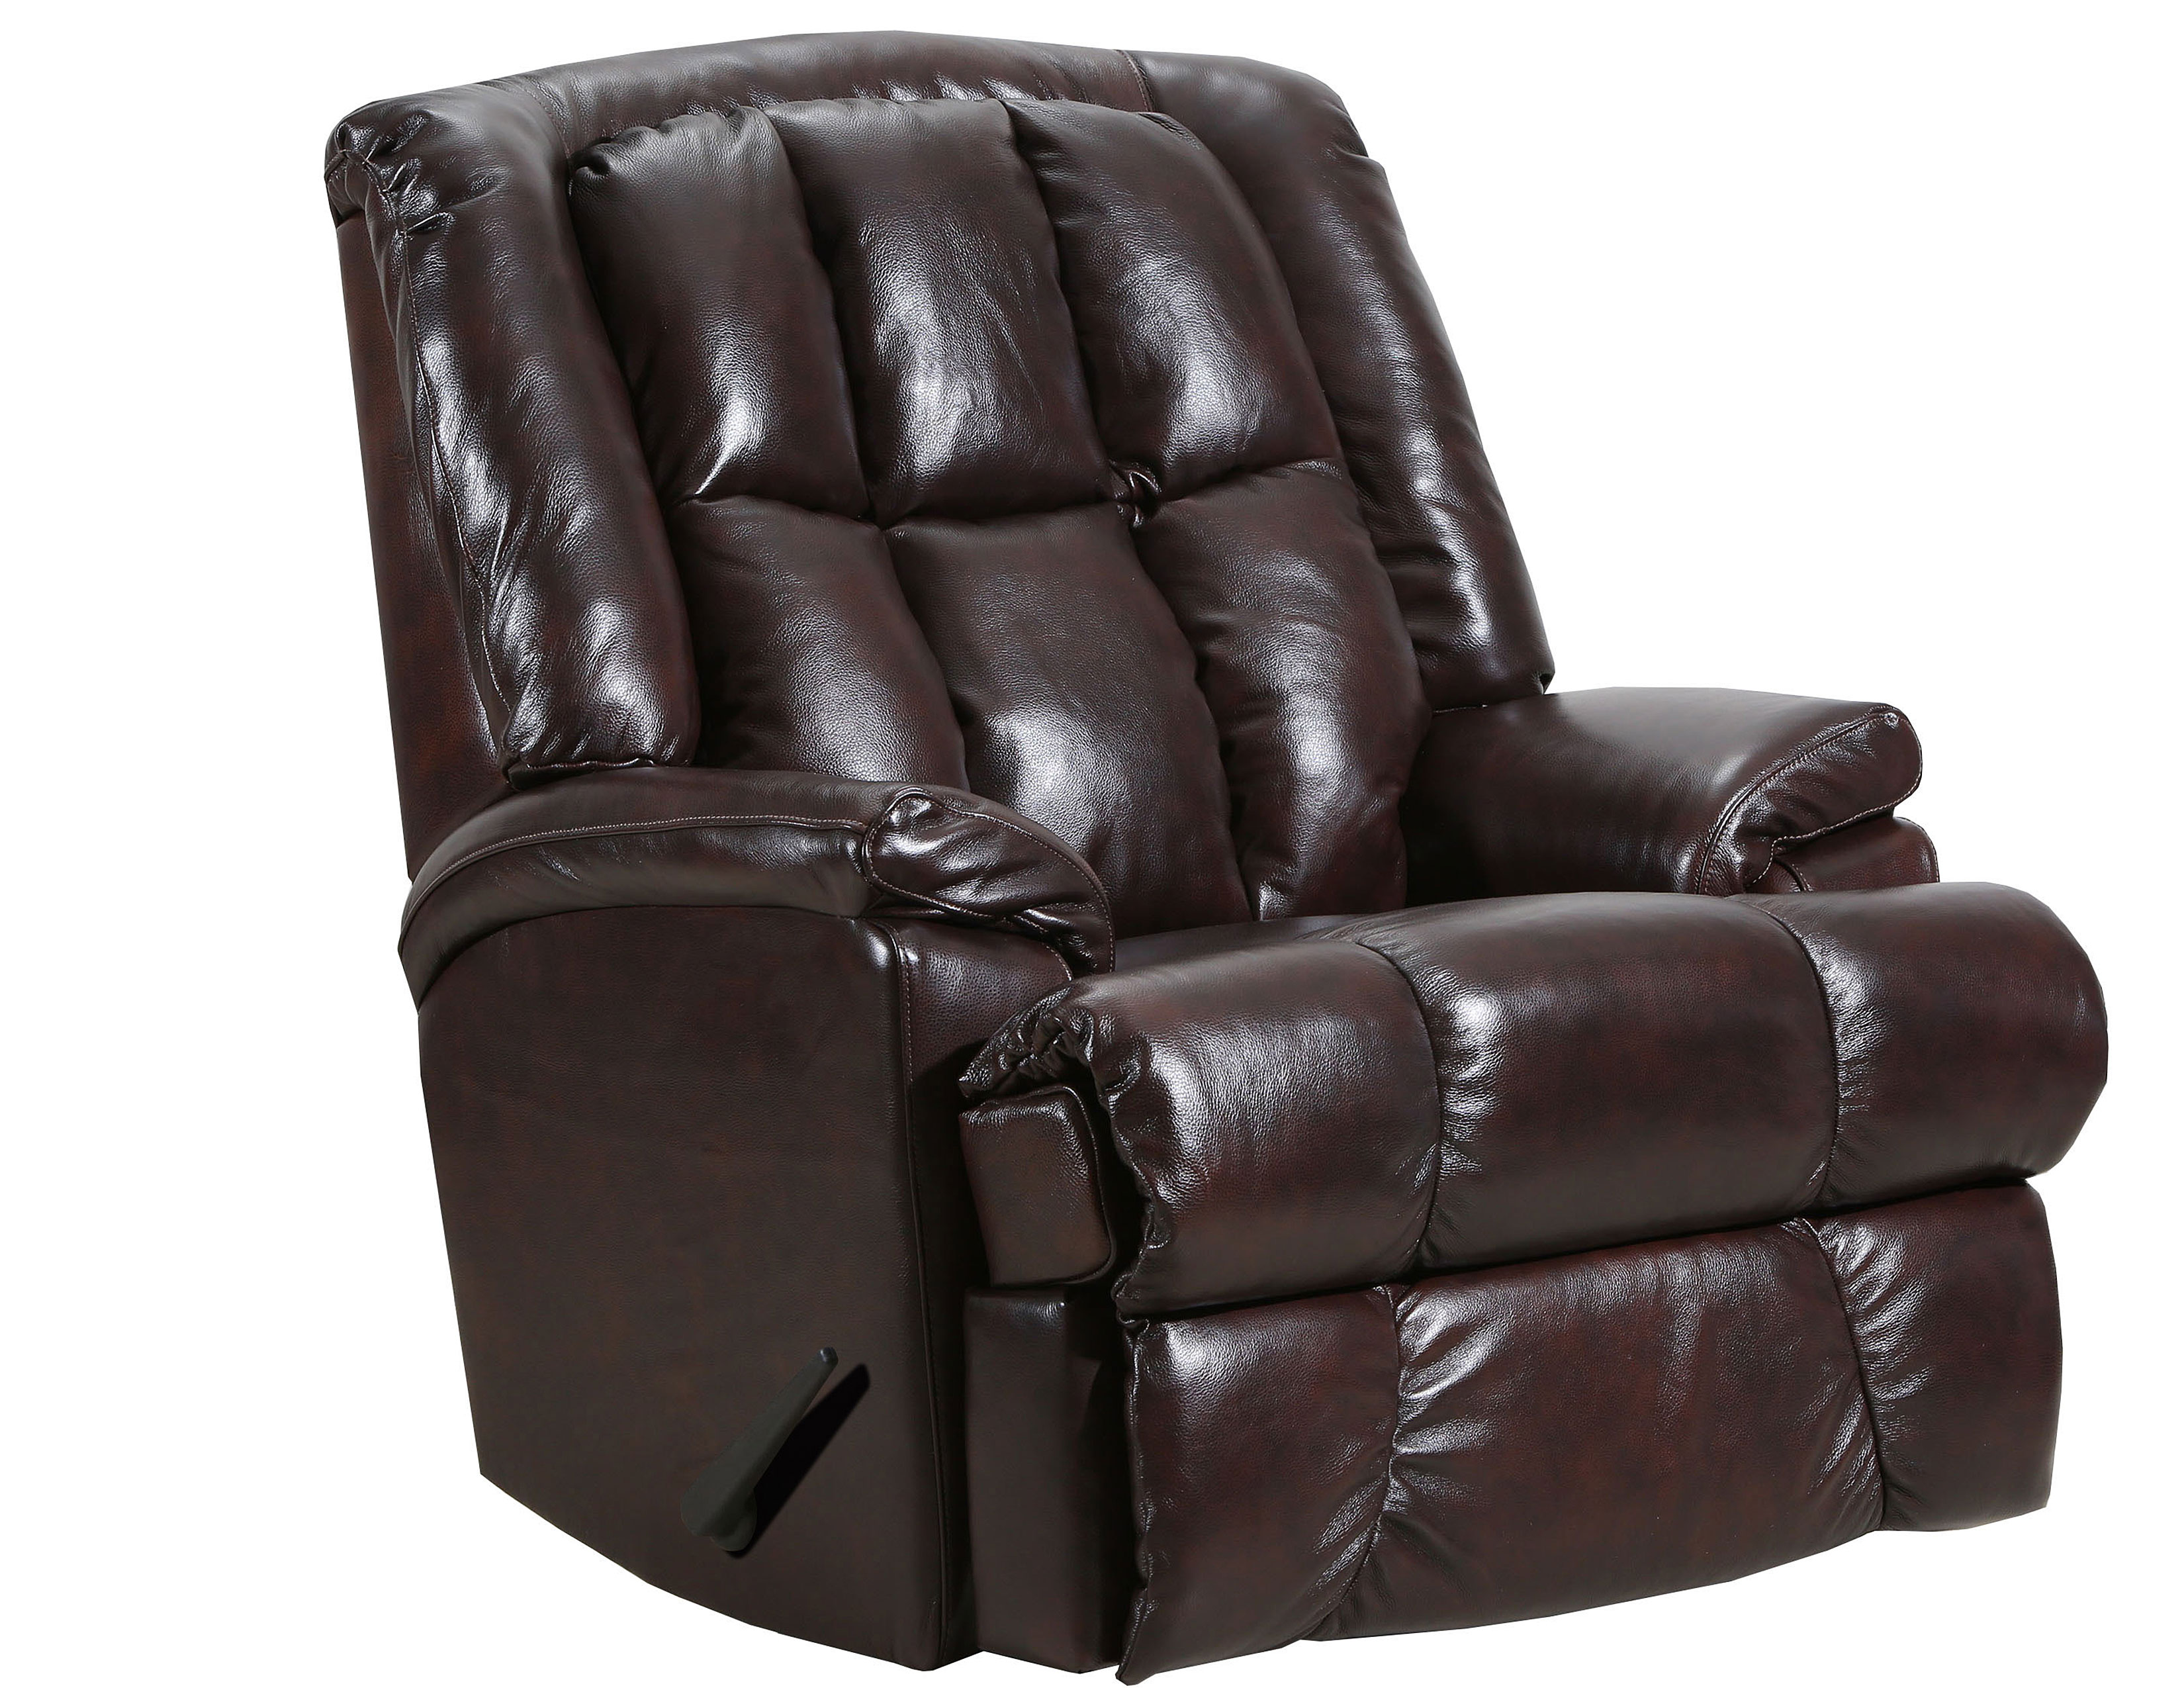 Maximus Big Mans Leather Recliner Rated 500 Sofas And Sectionals